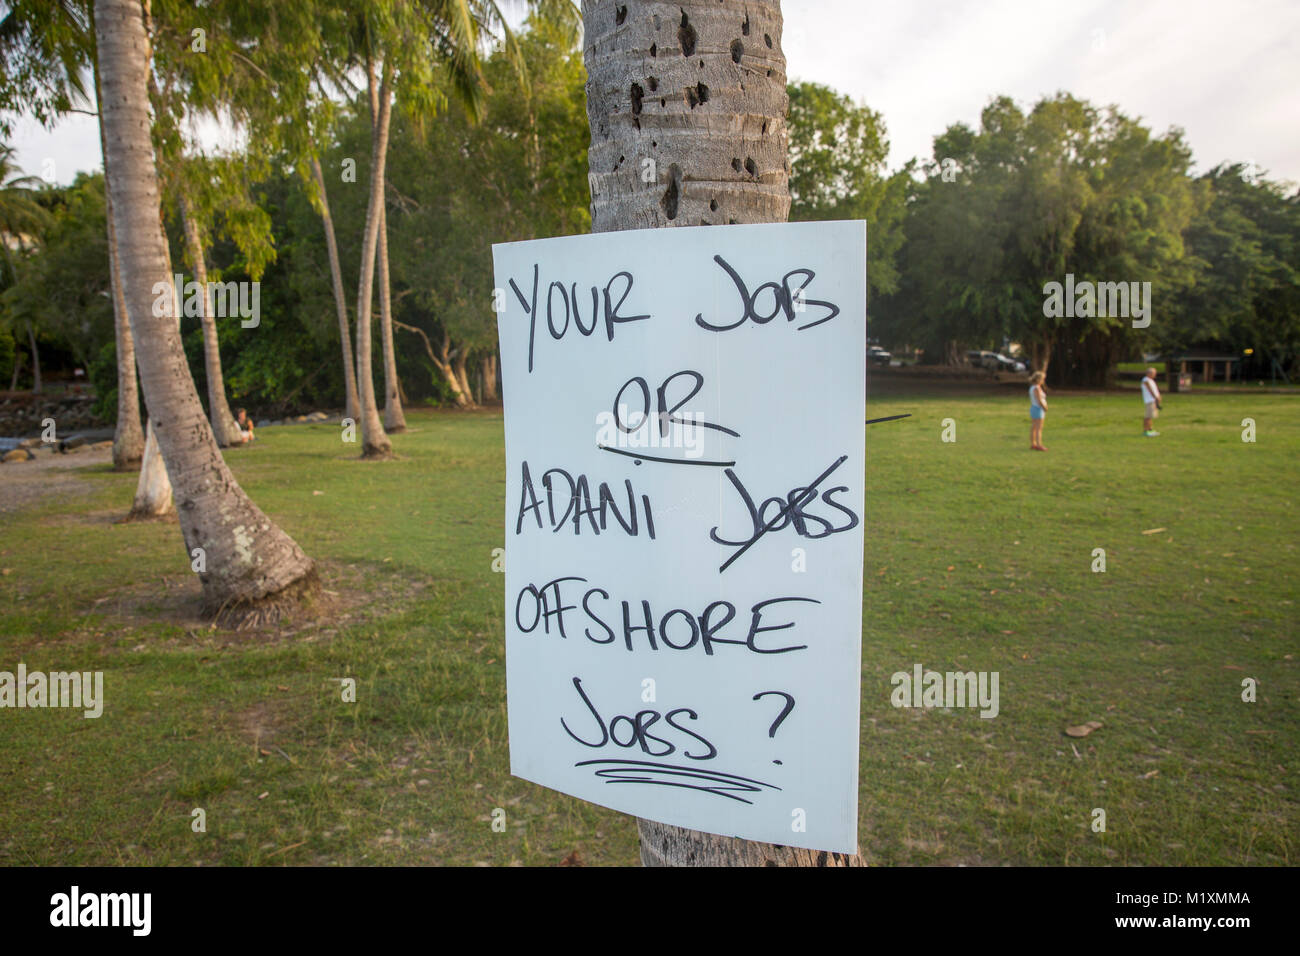 Sign objecting to the Adani coal mine and risk of offshore